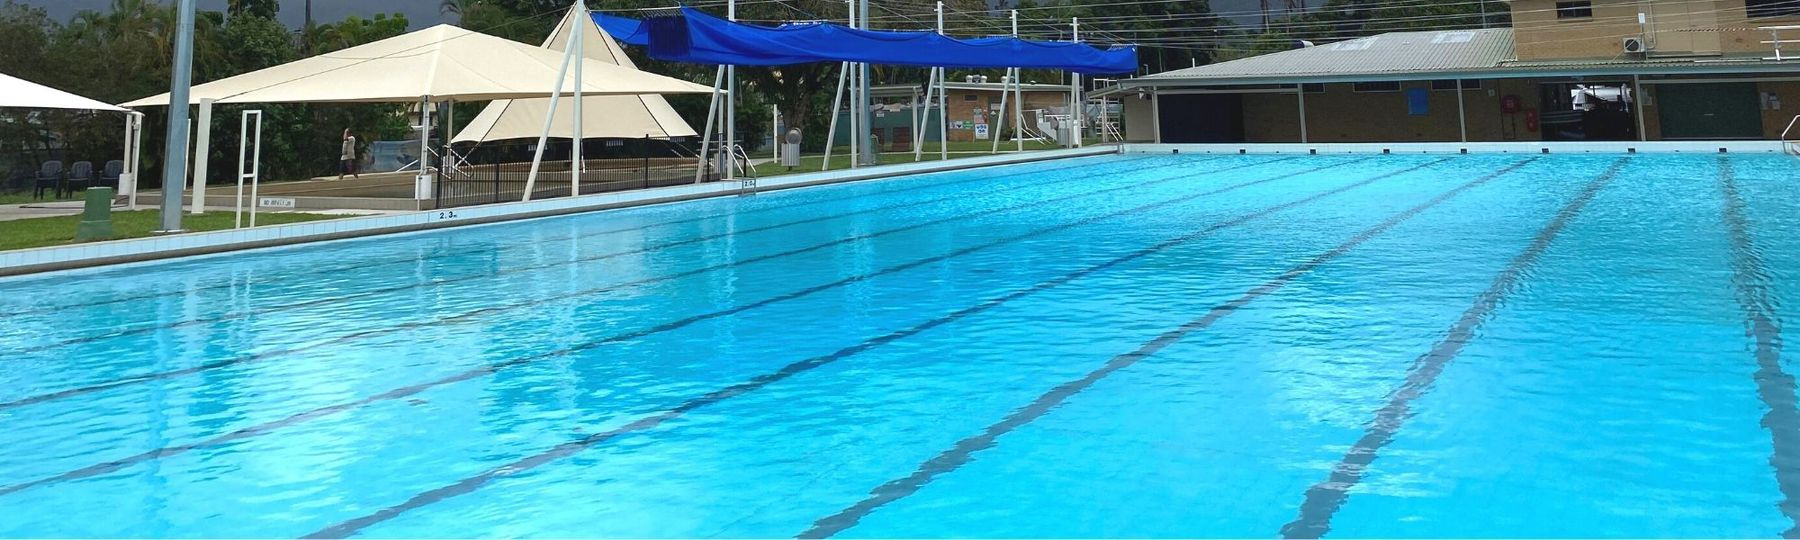 Mossman Pool to spring back open